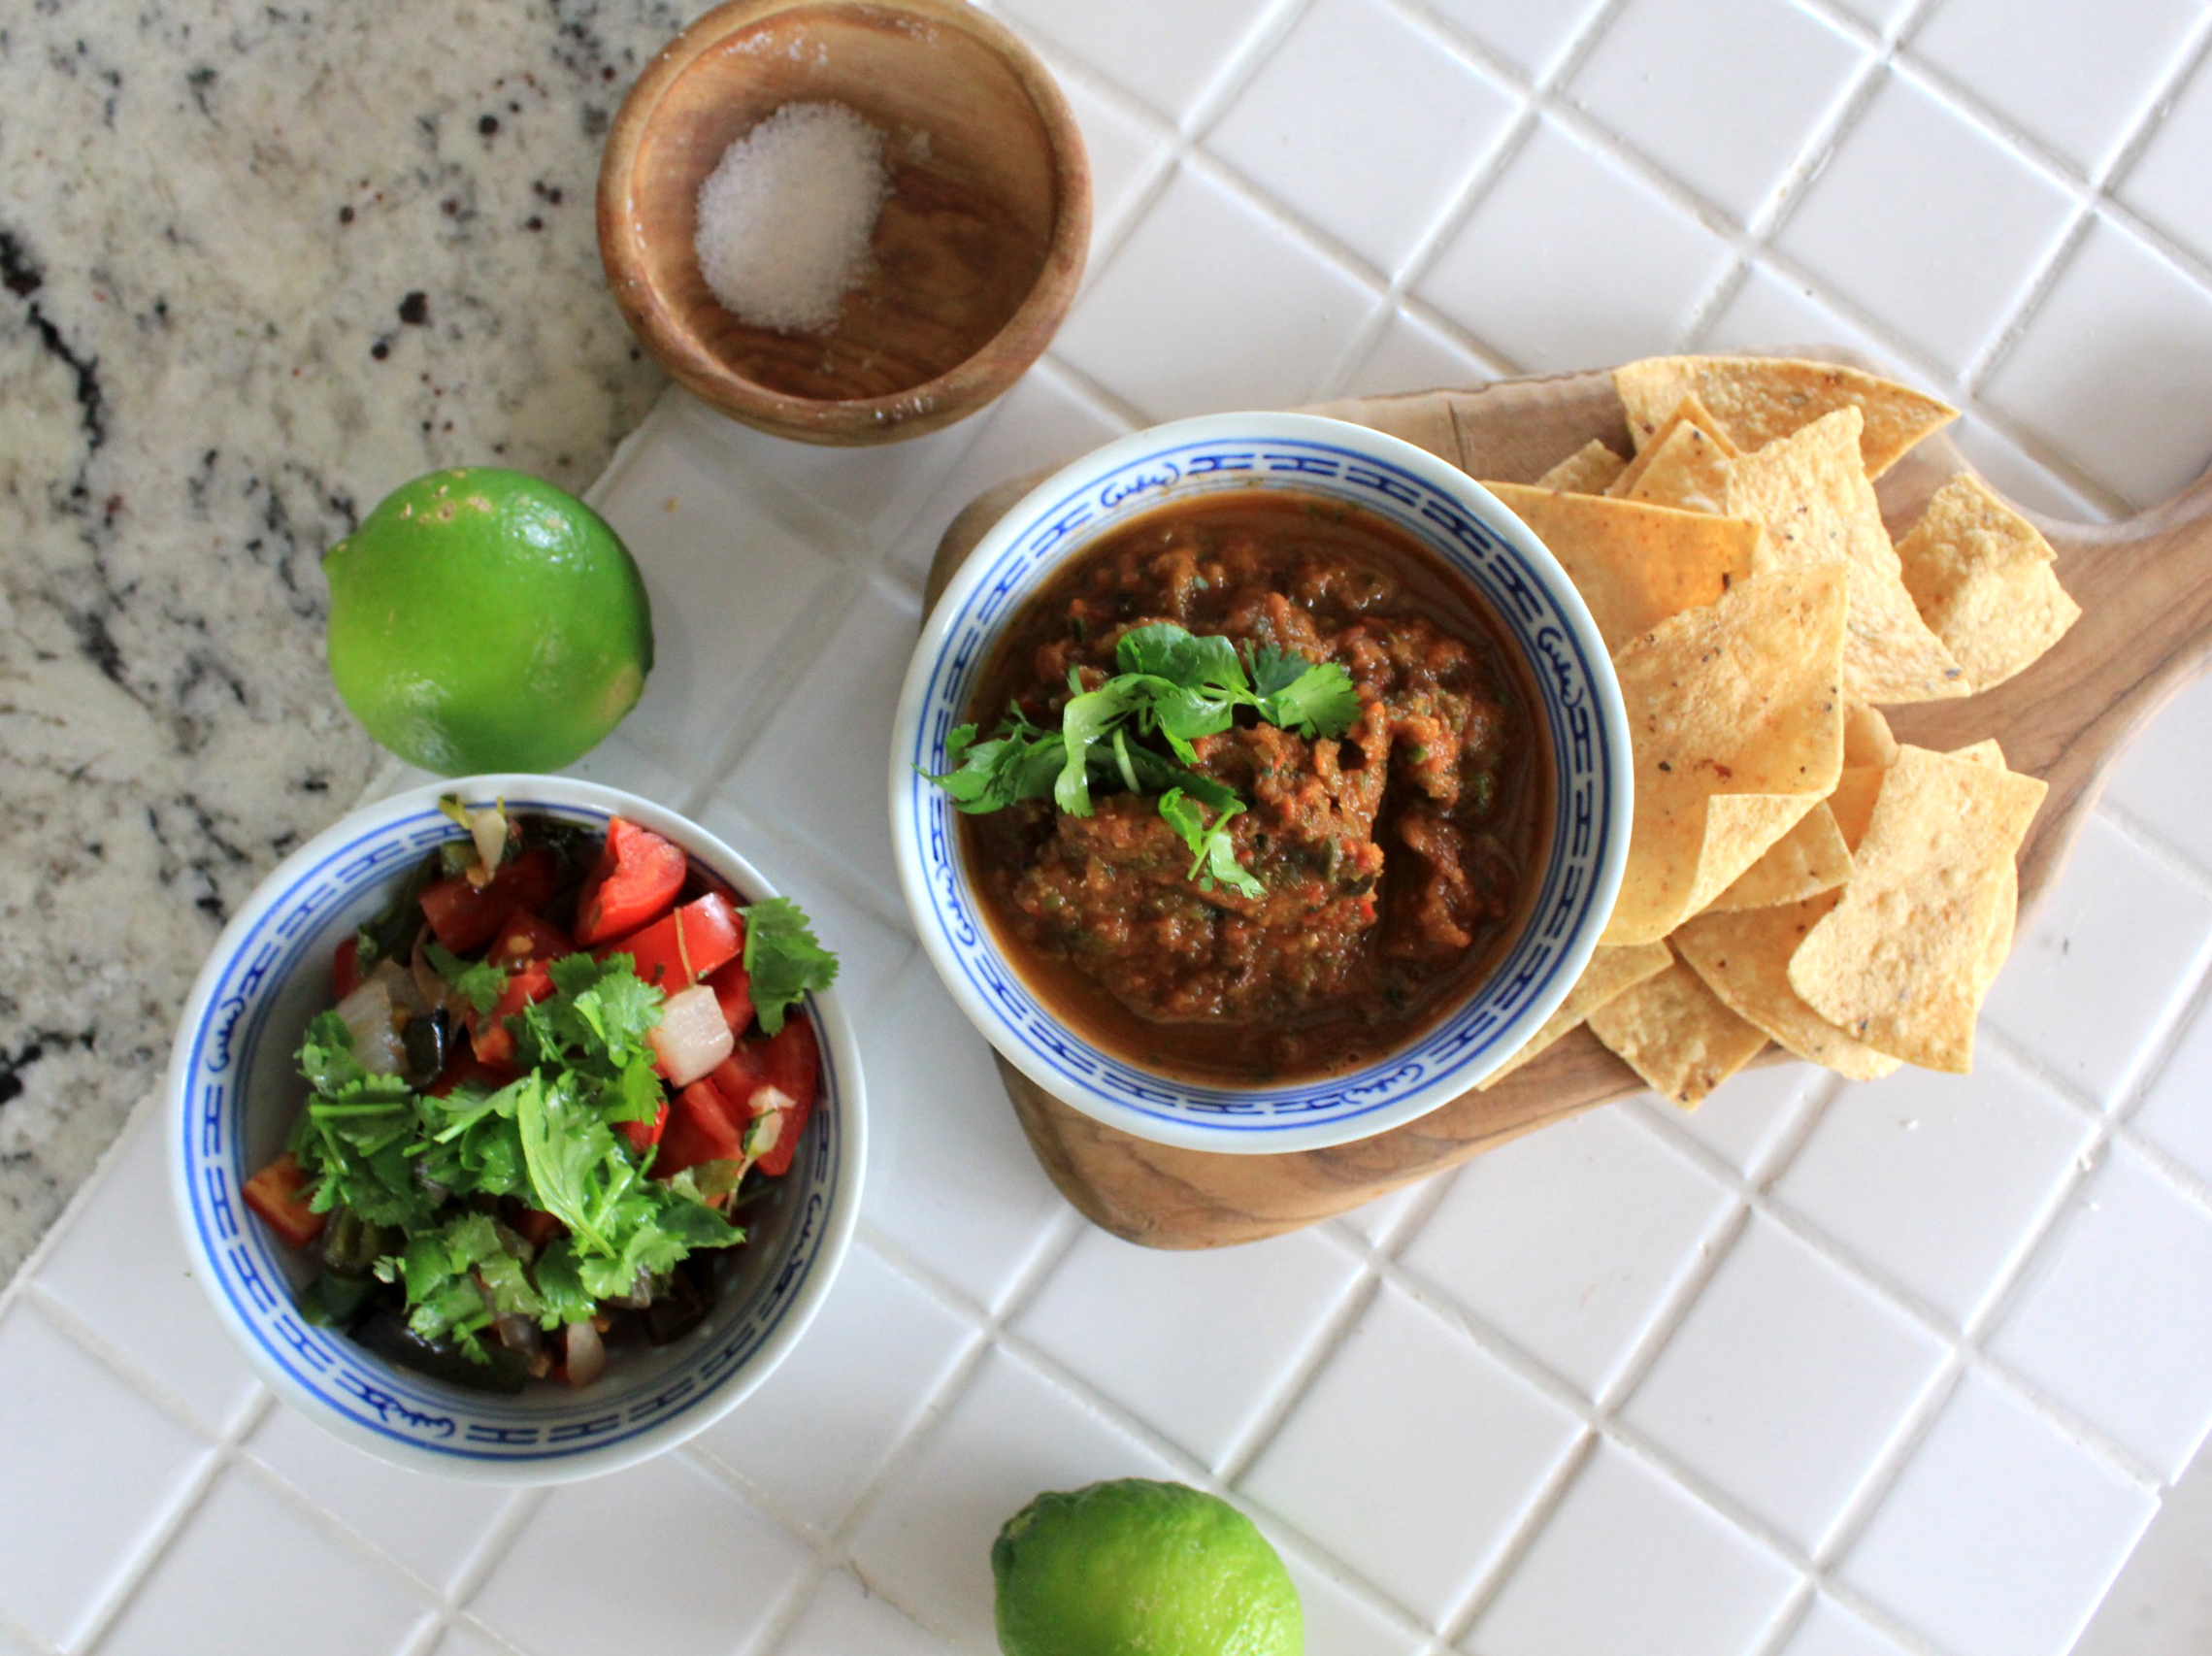 You can leave the salsa chunky and rustic, or blend it (my favourite way) for flavour that really hits with every bite.